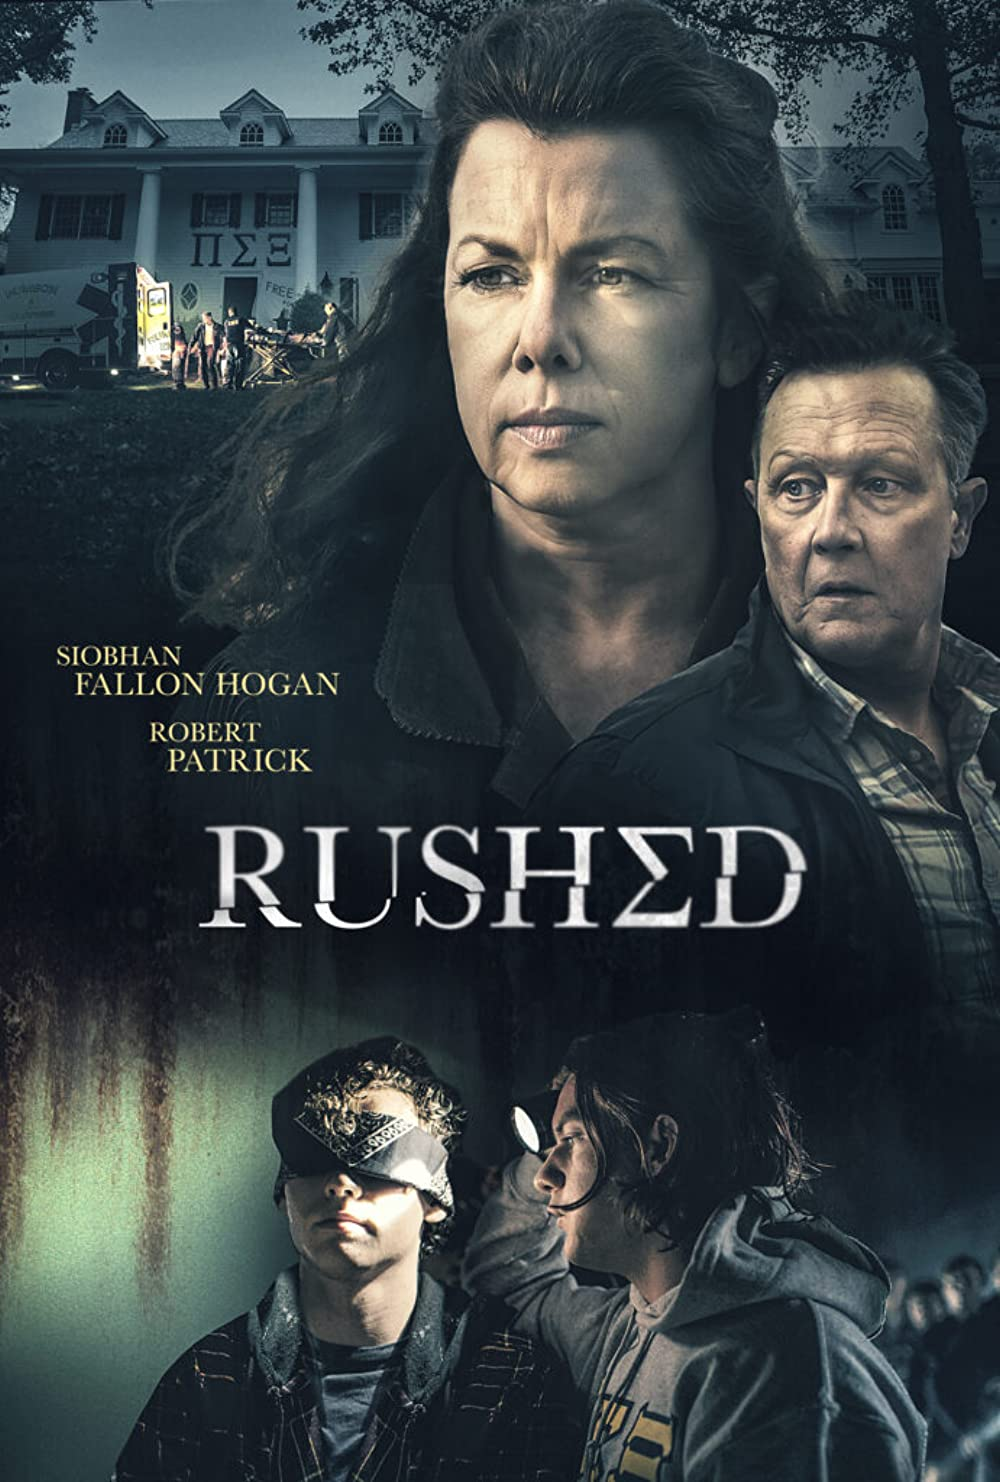 Rushed (2021) Hindi (Voice Over) Dubbed+ English [Dual Audio] WebRip 720p [1XBET]